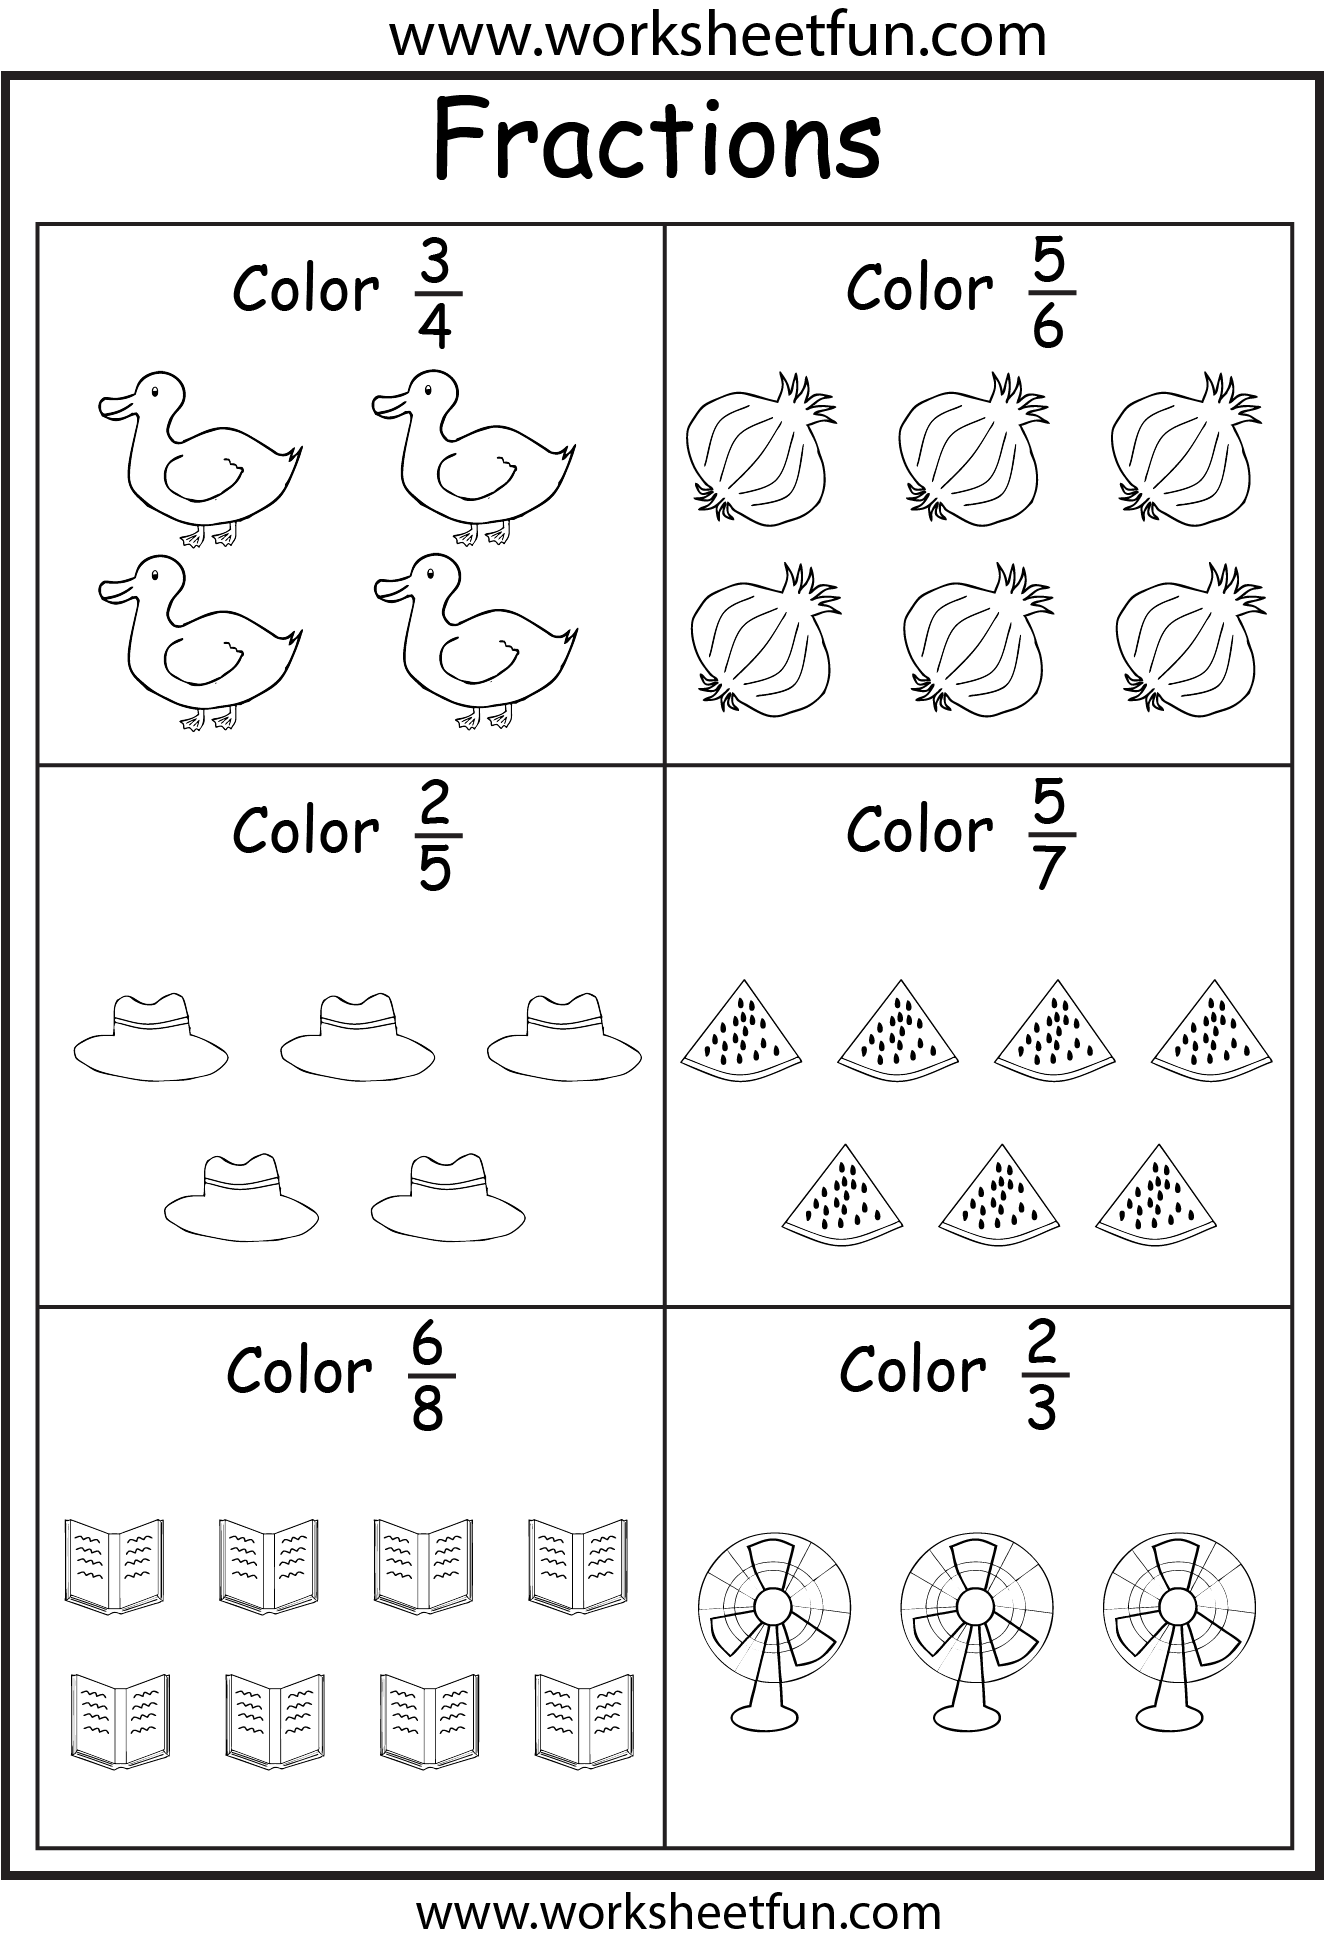 Color Fractions